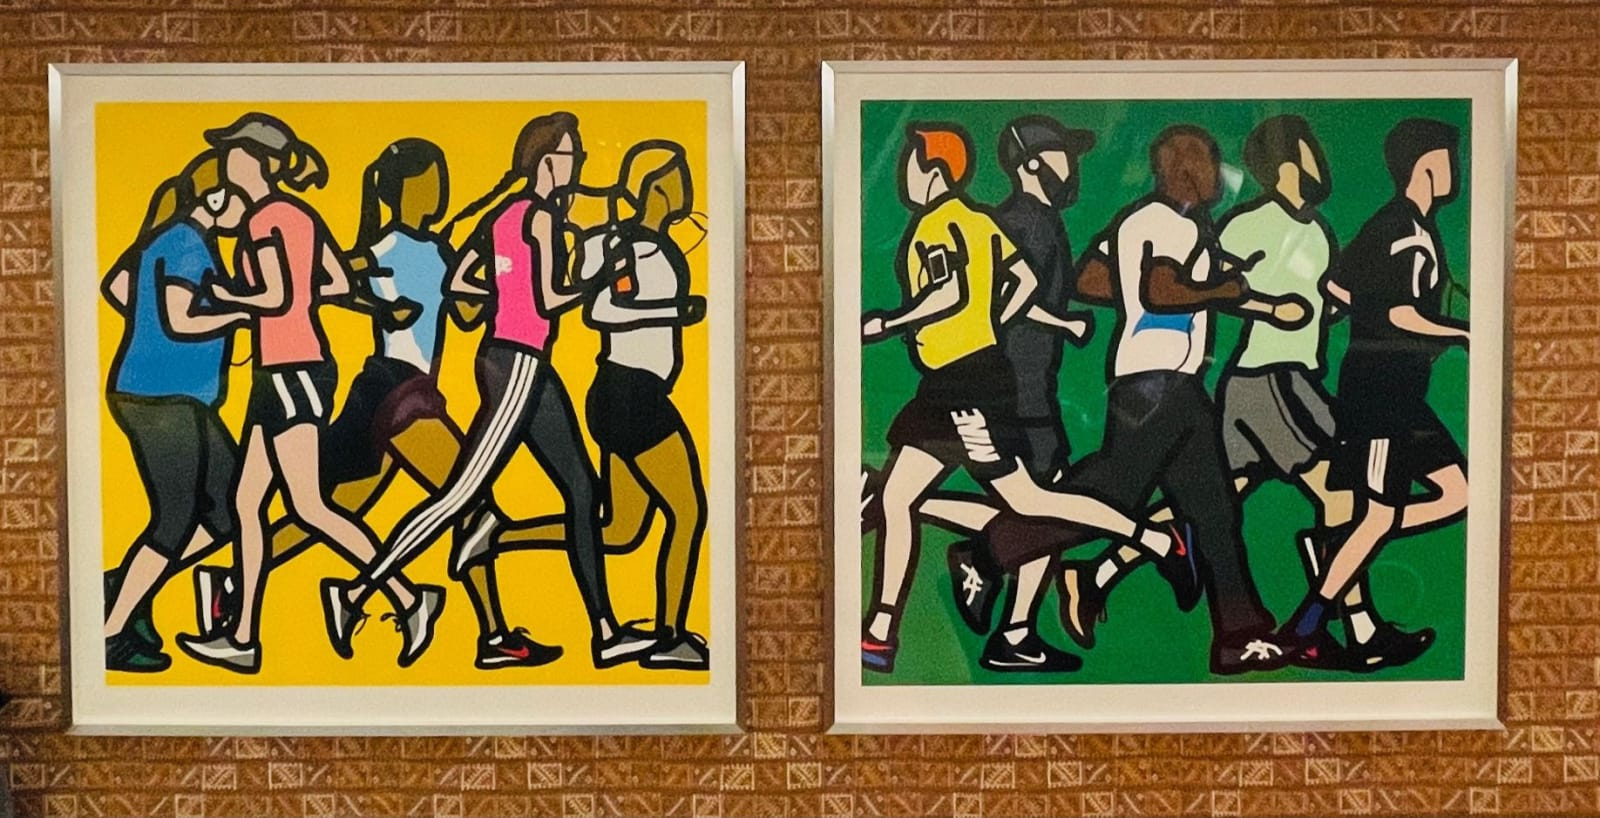 <p><em>Runners.</em>, 2016, by Julian Opie installed in the Whitby Hotel Gym, New York.</p>